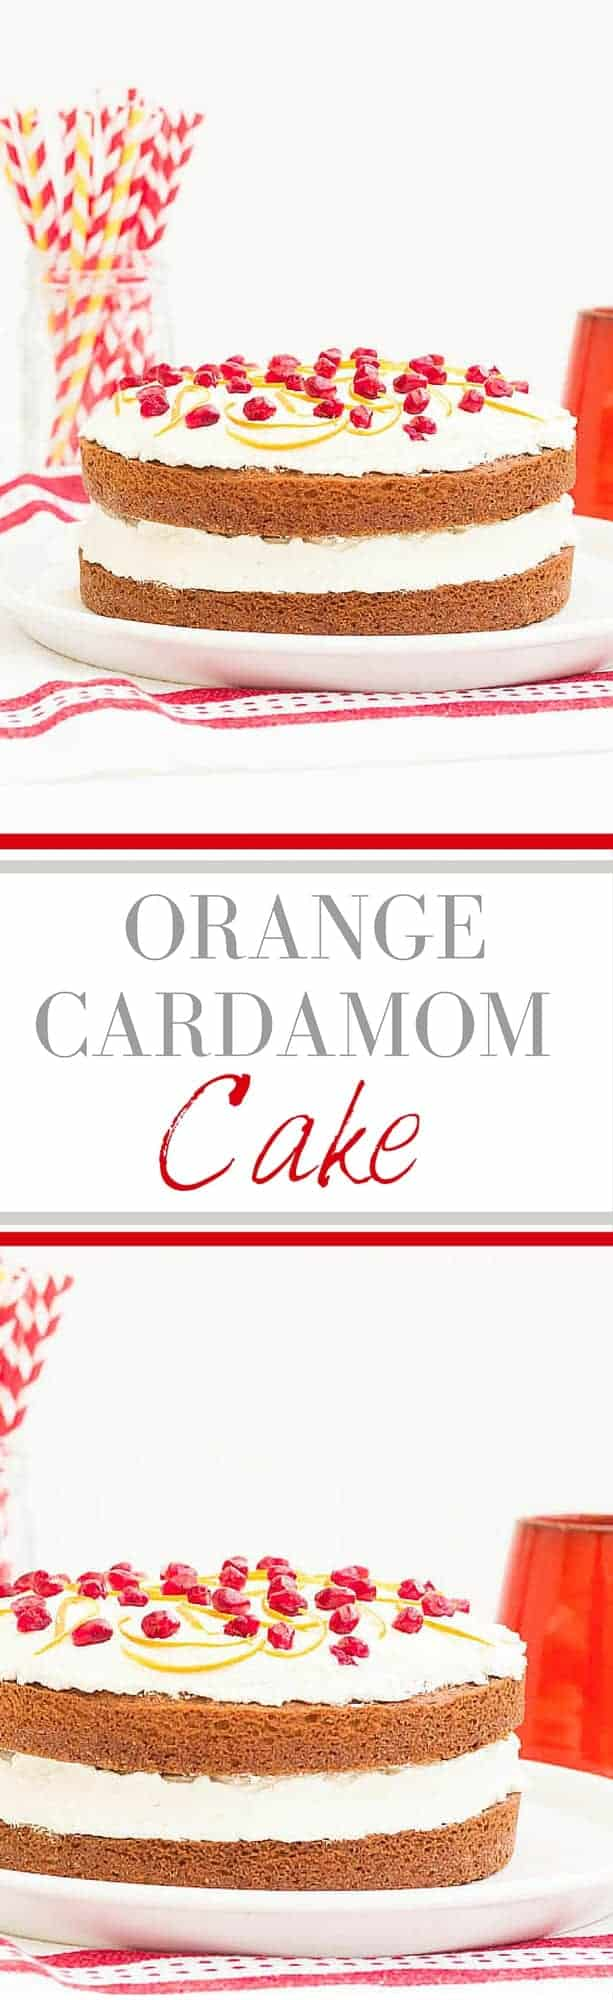 Orange Cardamom Cake Recipe | Recipes From A Pantry